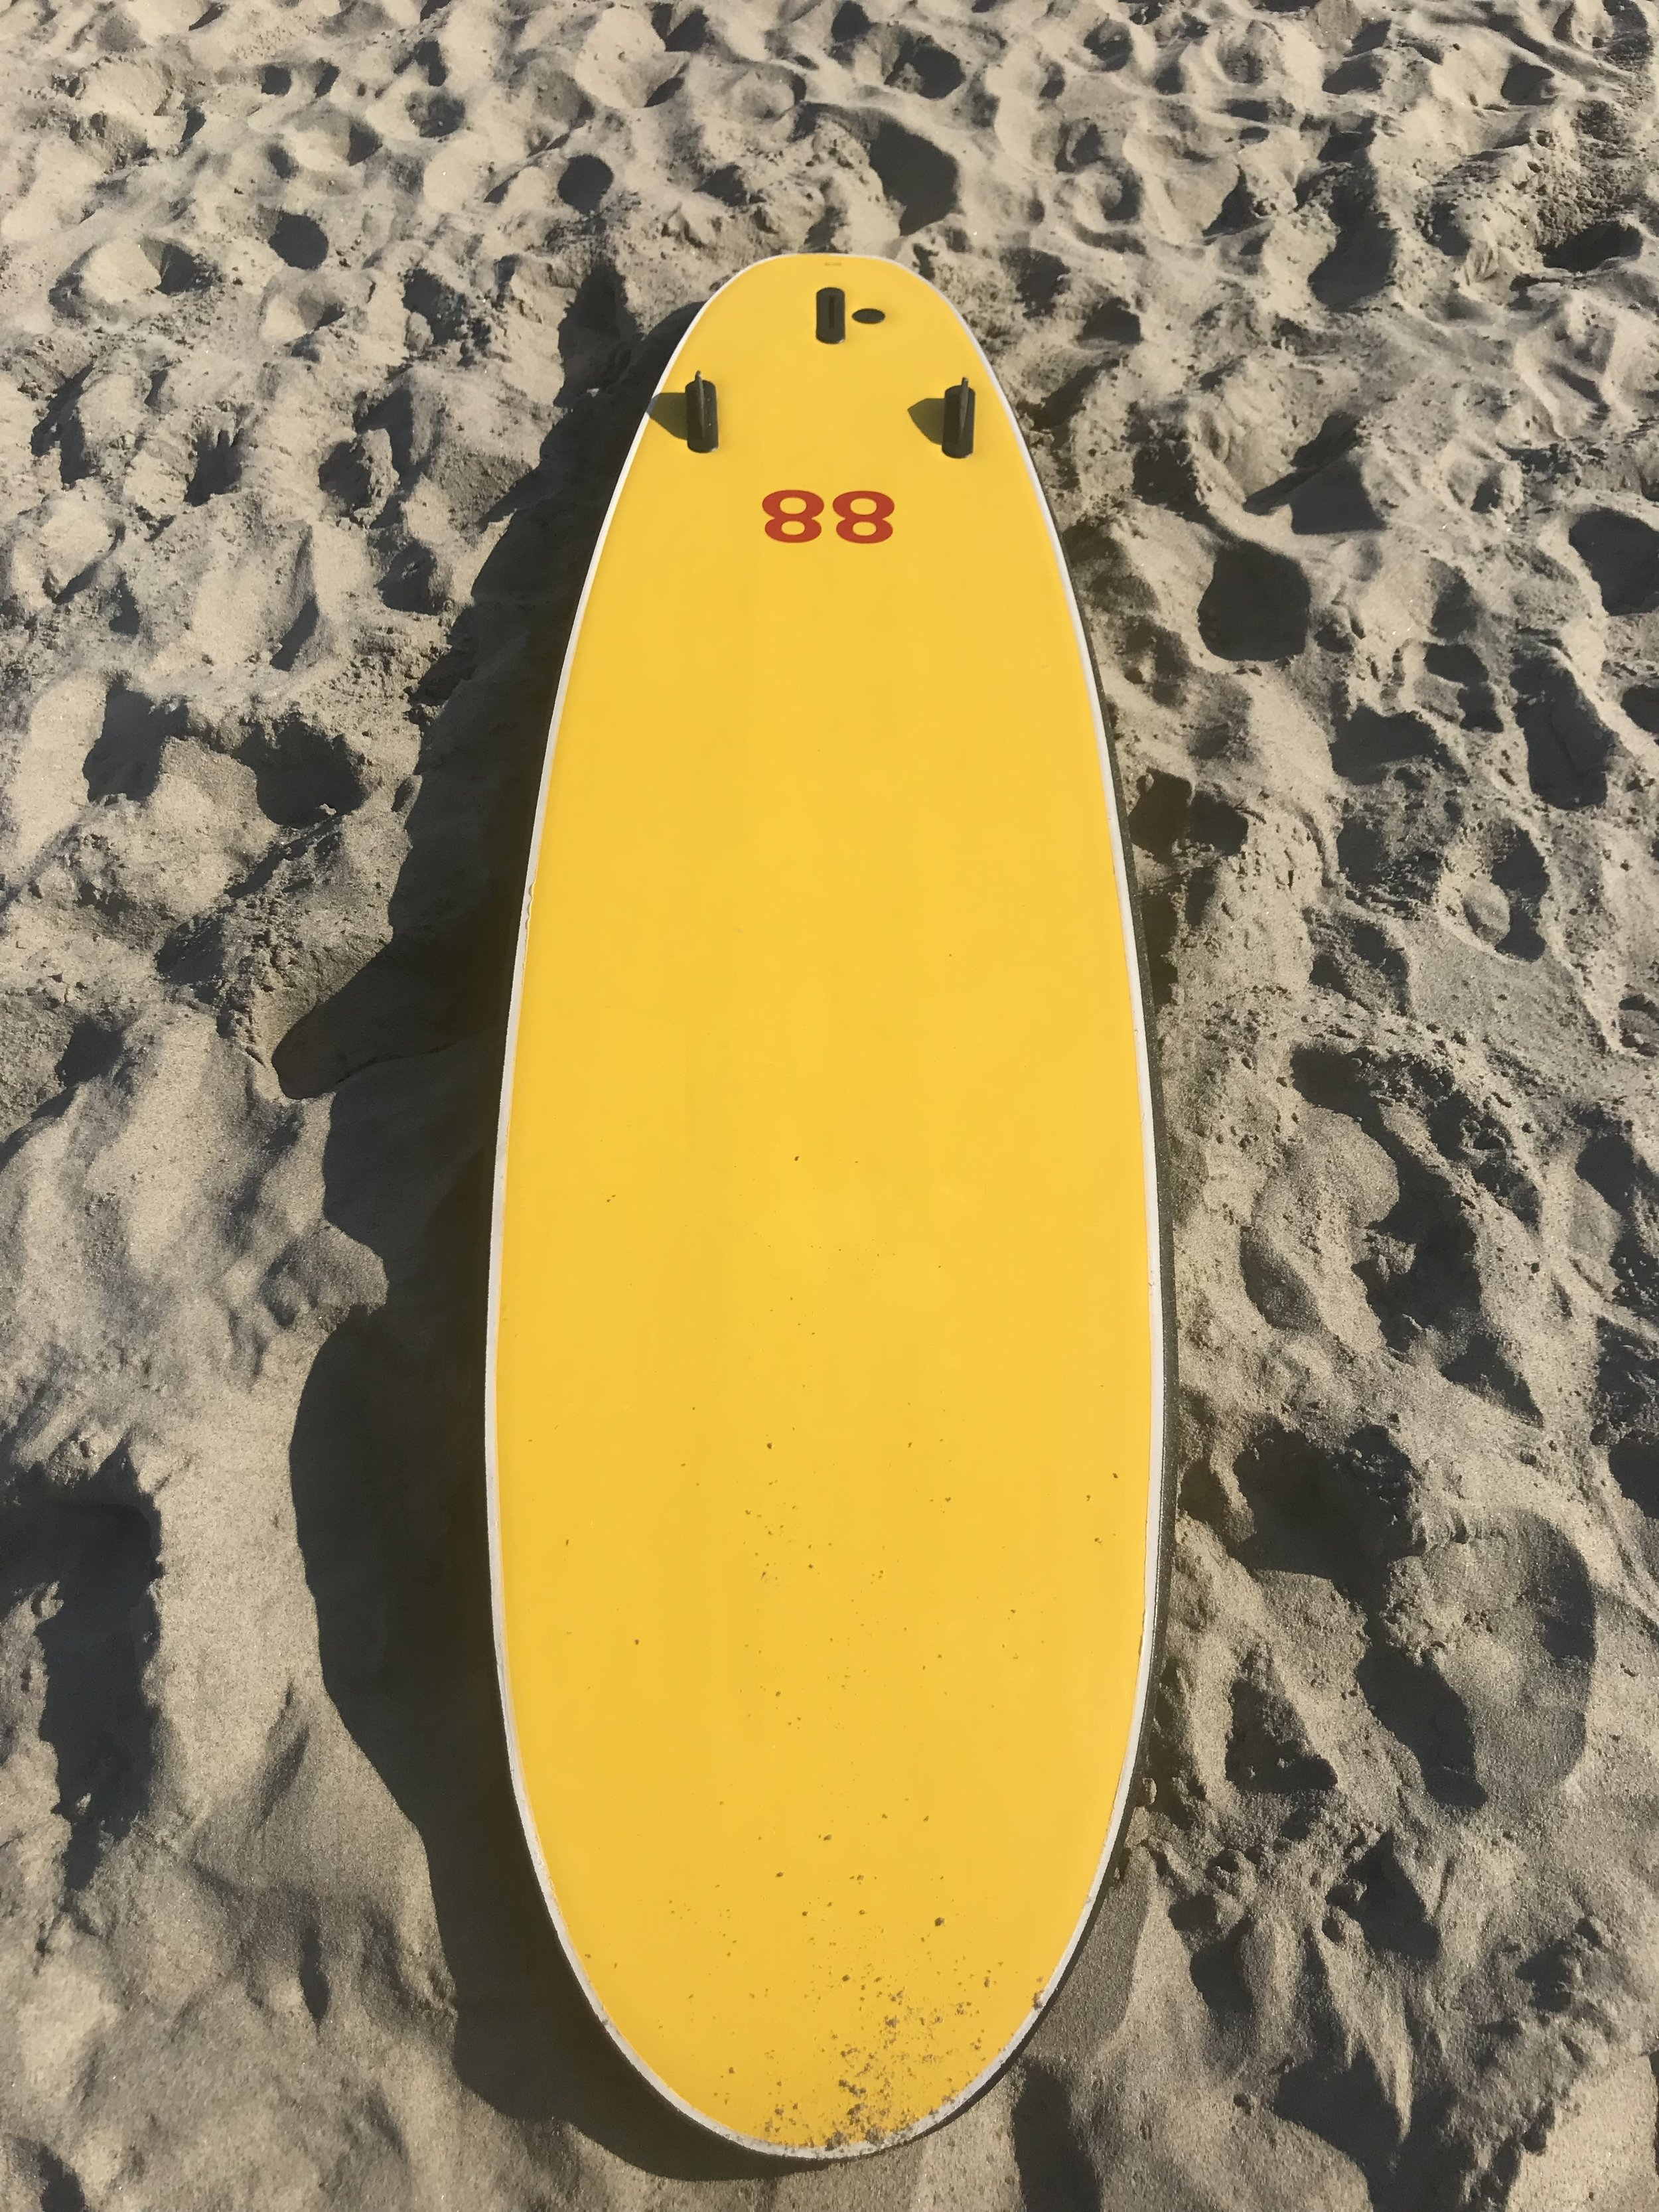 This is the 7 foot tri-fin. They have a single fin or even finless (no fin boxes) model in the 7 foot and there are 8 foot and 10 foot board models.